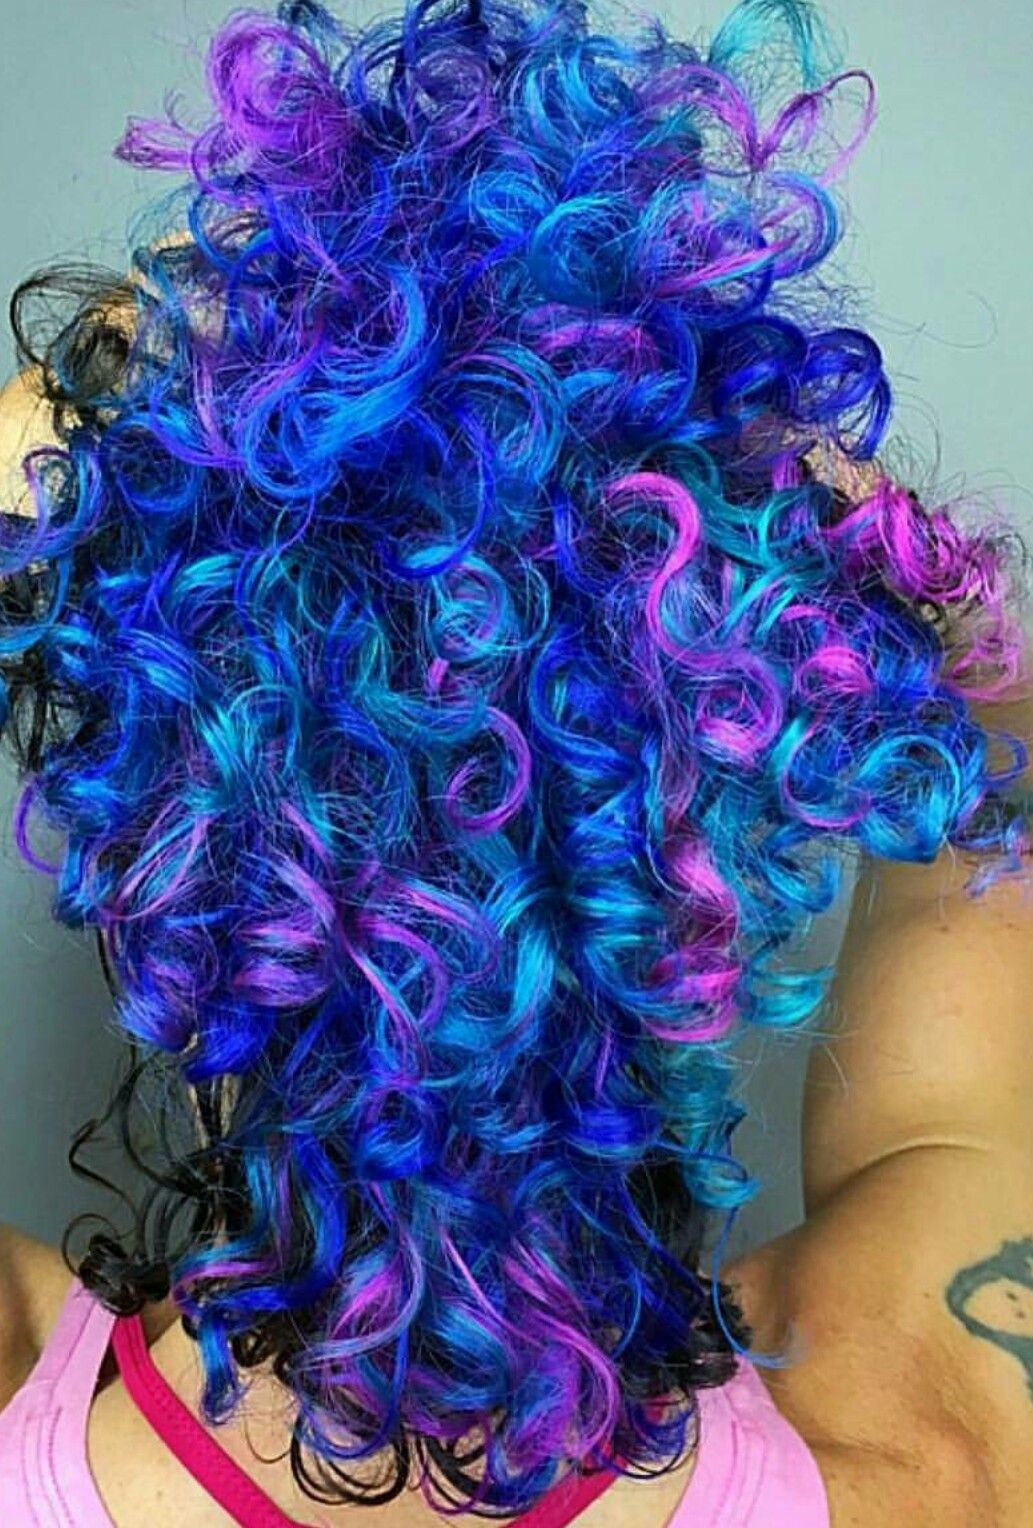 Blue Purple Mixed Dyed Curly Hair Iroirocolors Dyed Curly